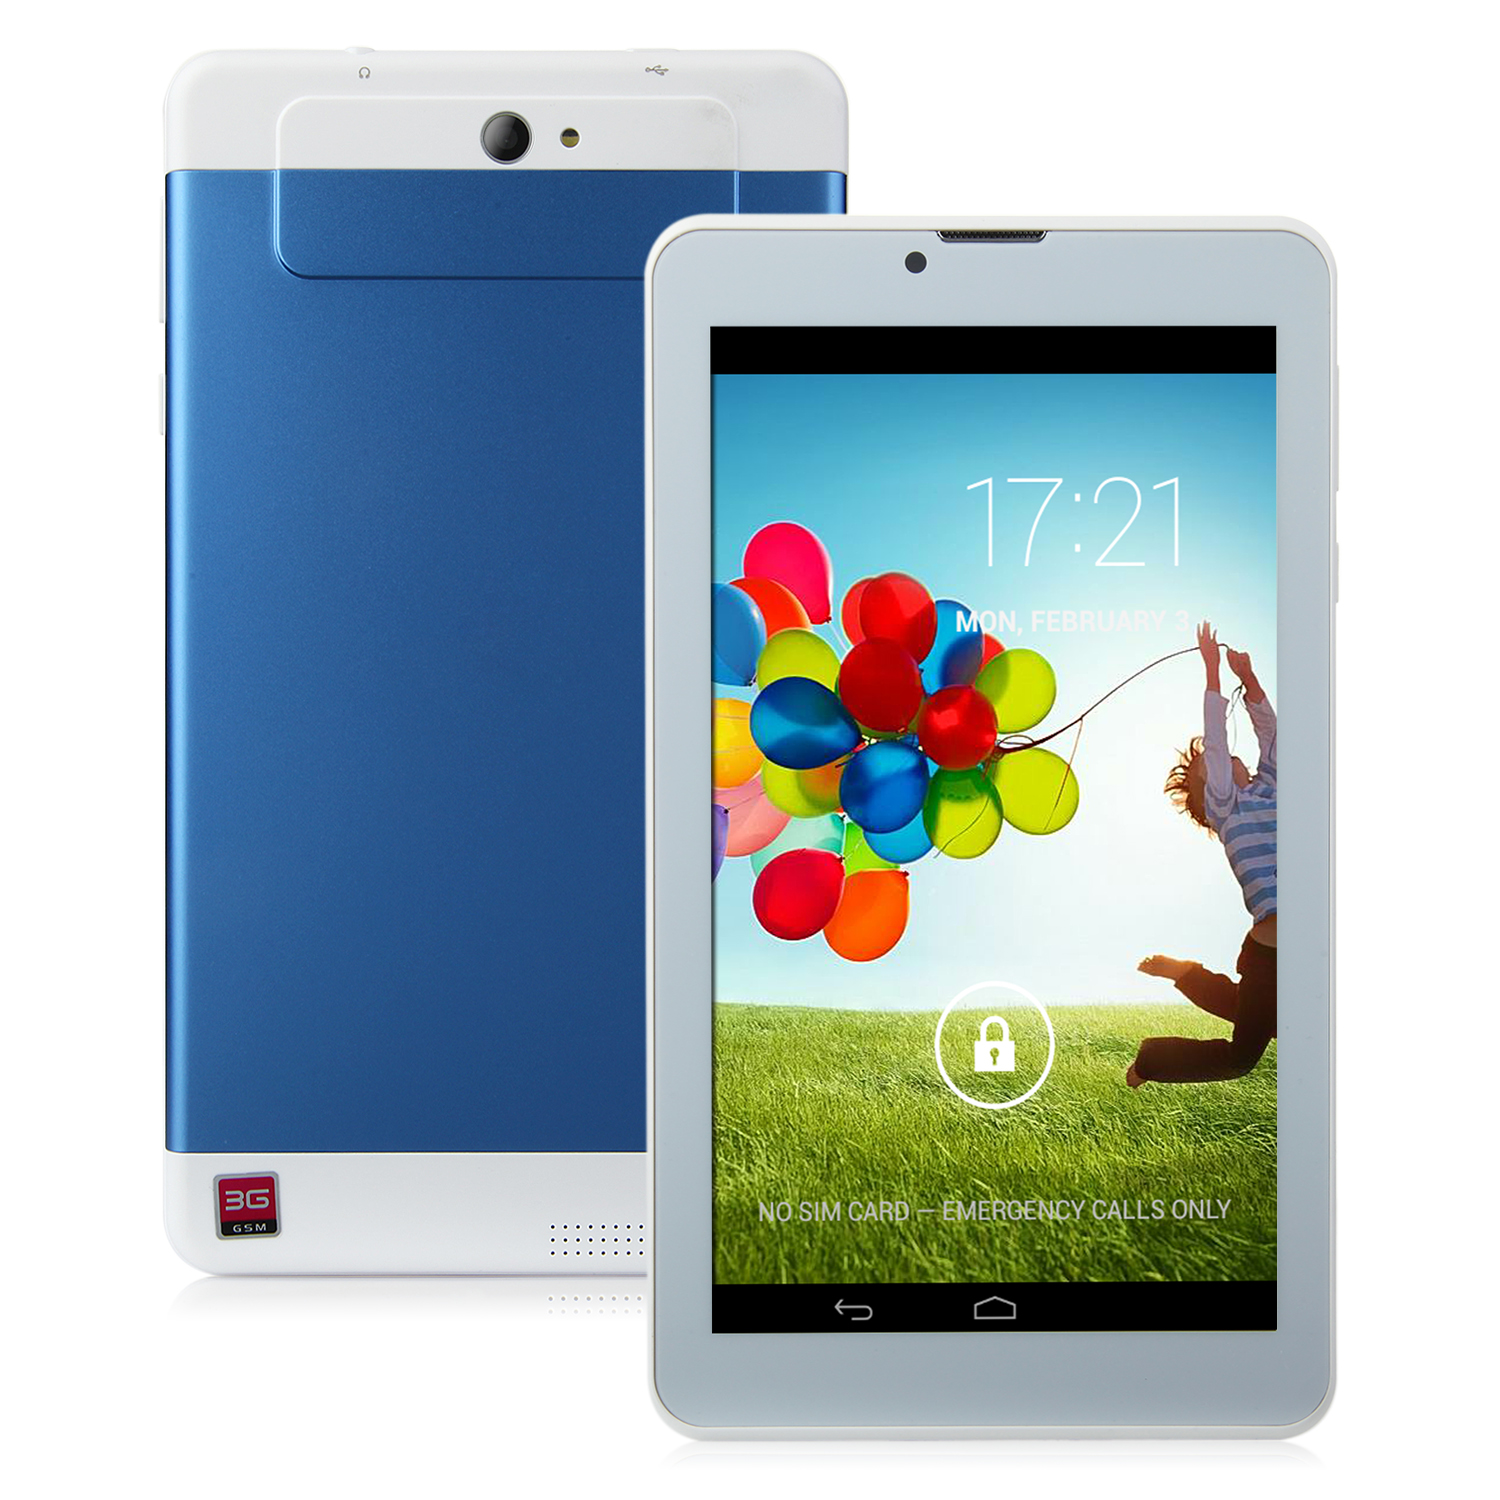 S73 3G Tablet PC 7.0 Inch Dual Core MTK6572W Android 4.2 4GB WCDMA Blue